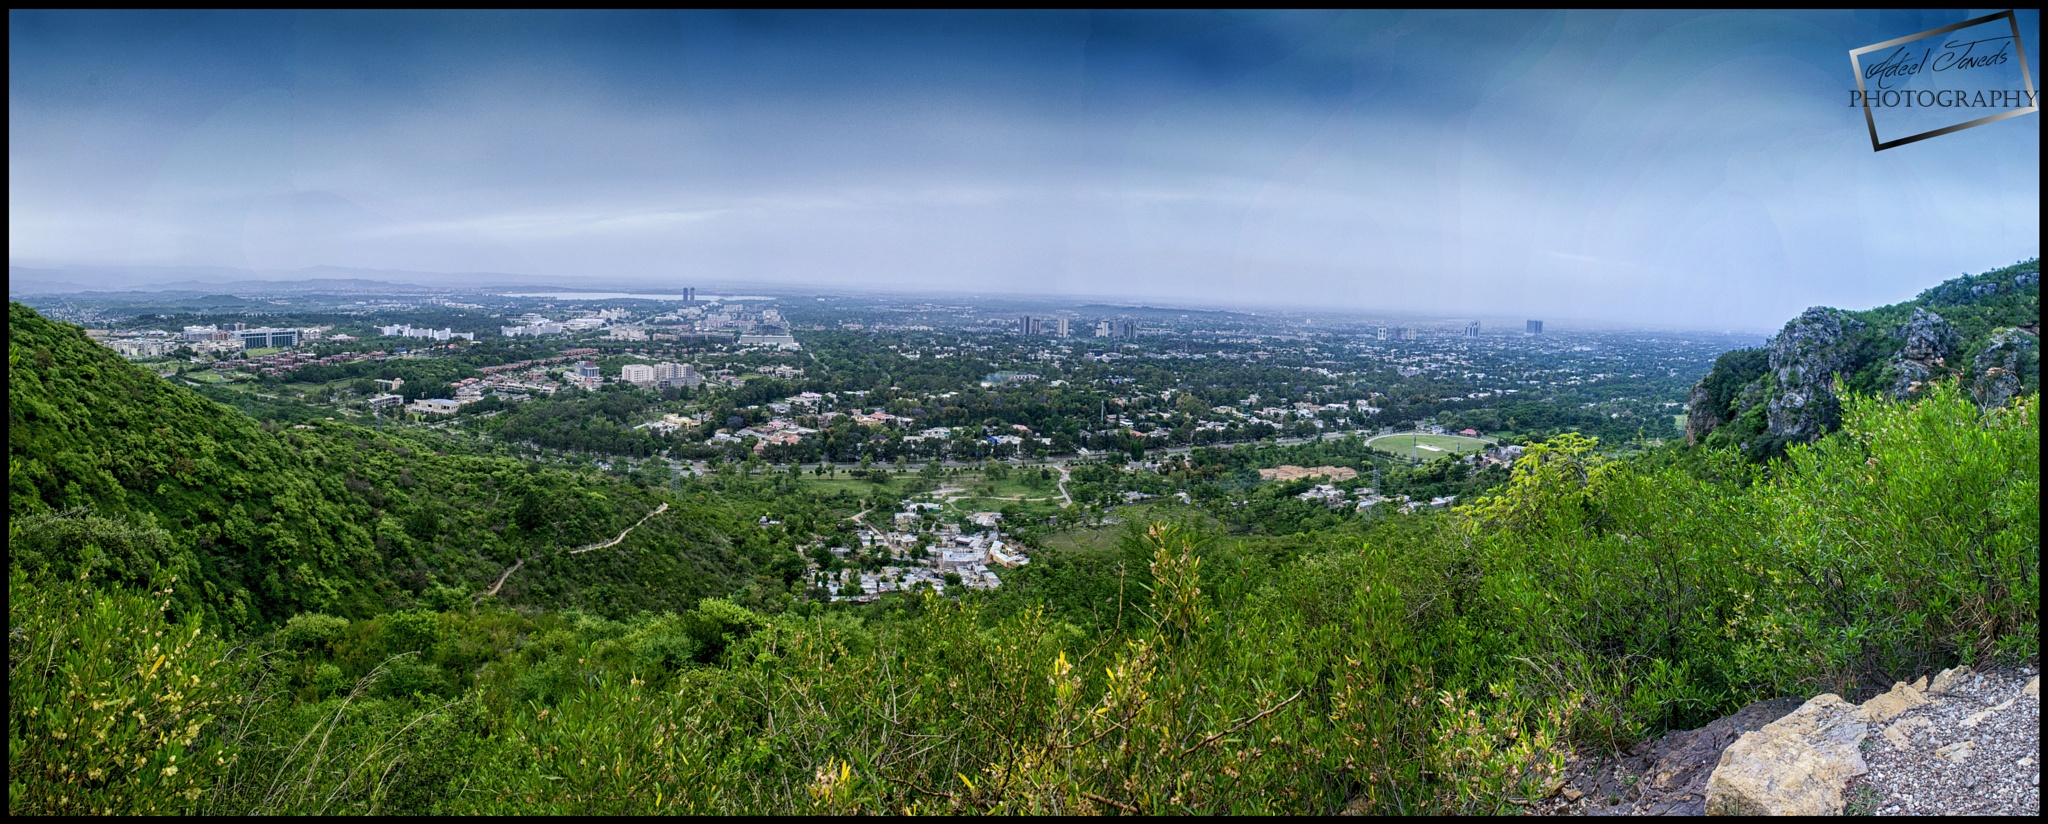 Beautiful View of Islamabad City From Margalla Hills by Adeel Javed